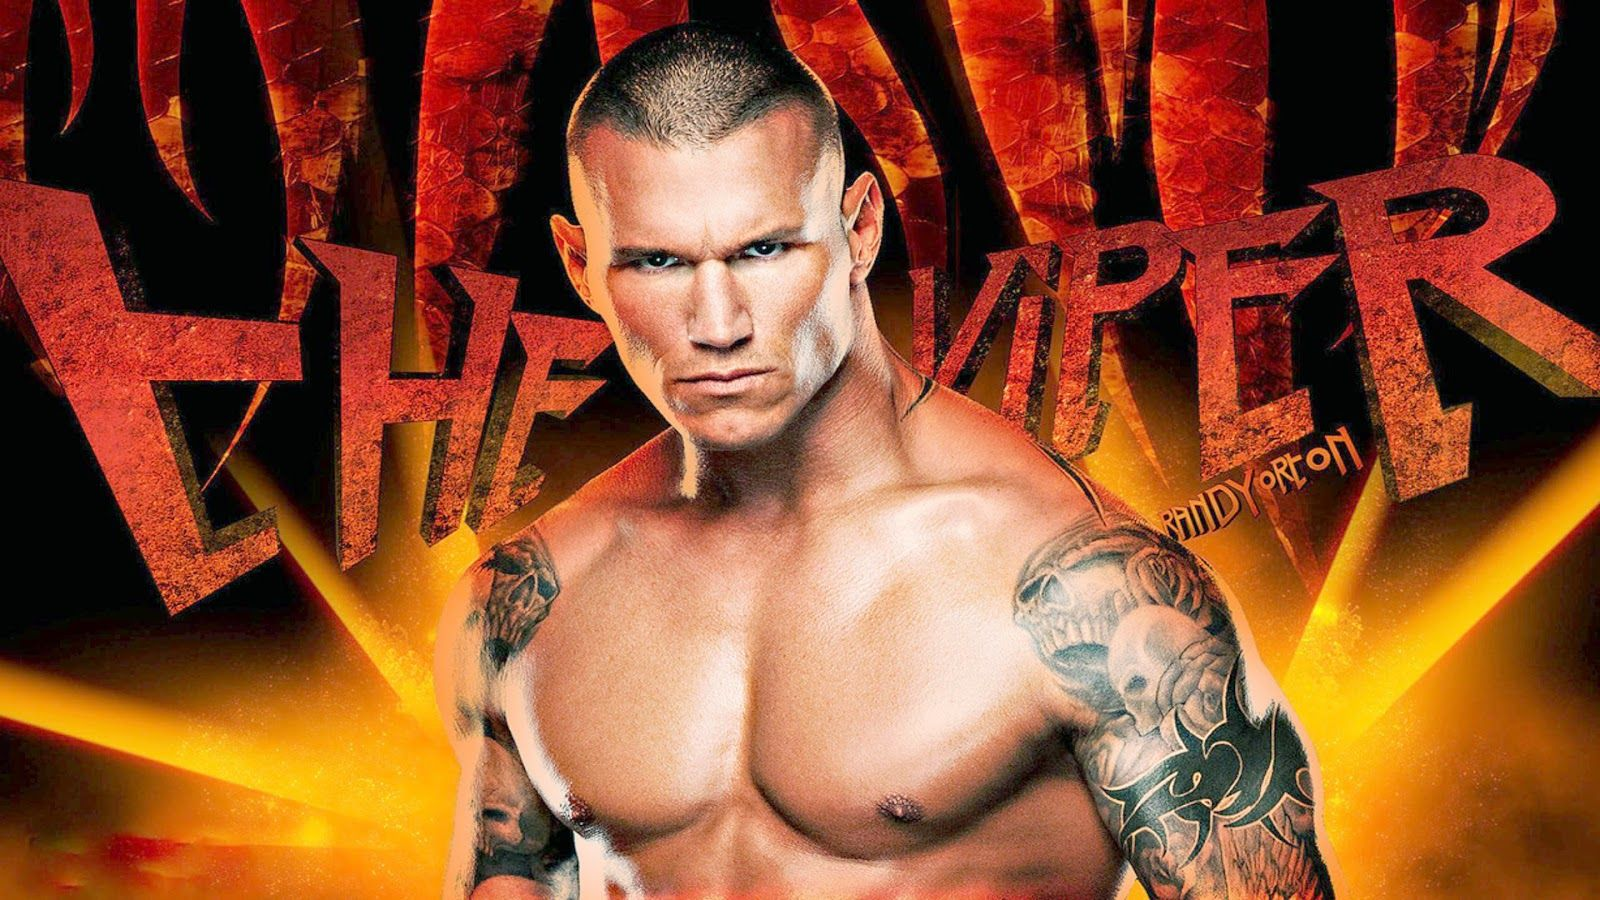 Randy Orton Wallpapers HD Download Free 1080p